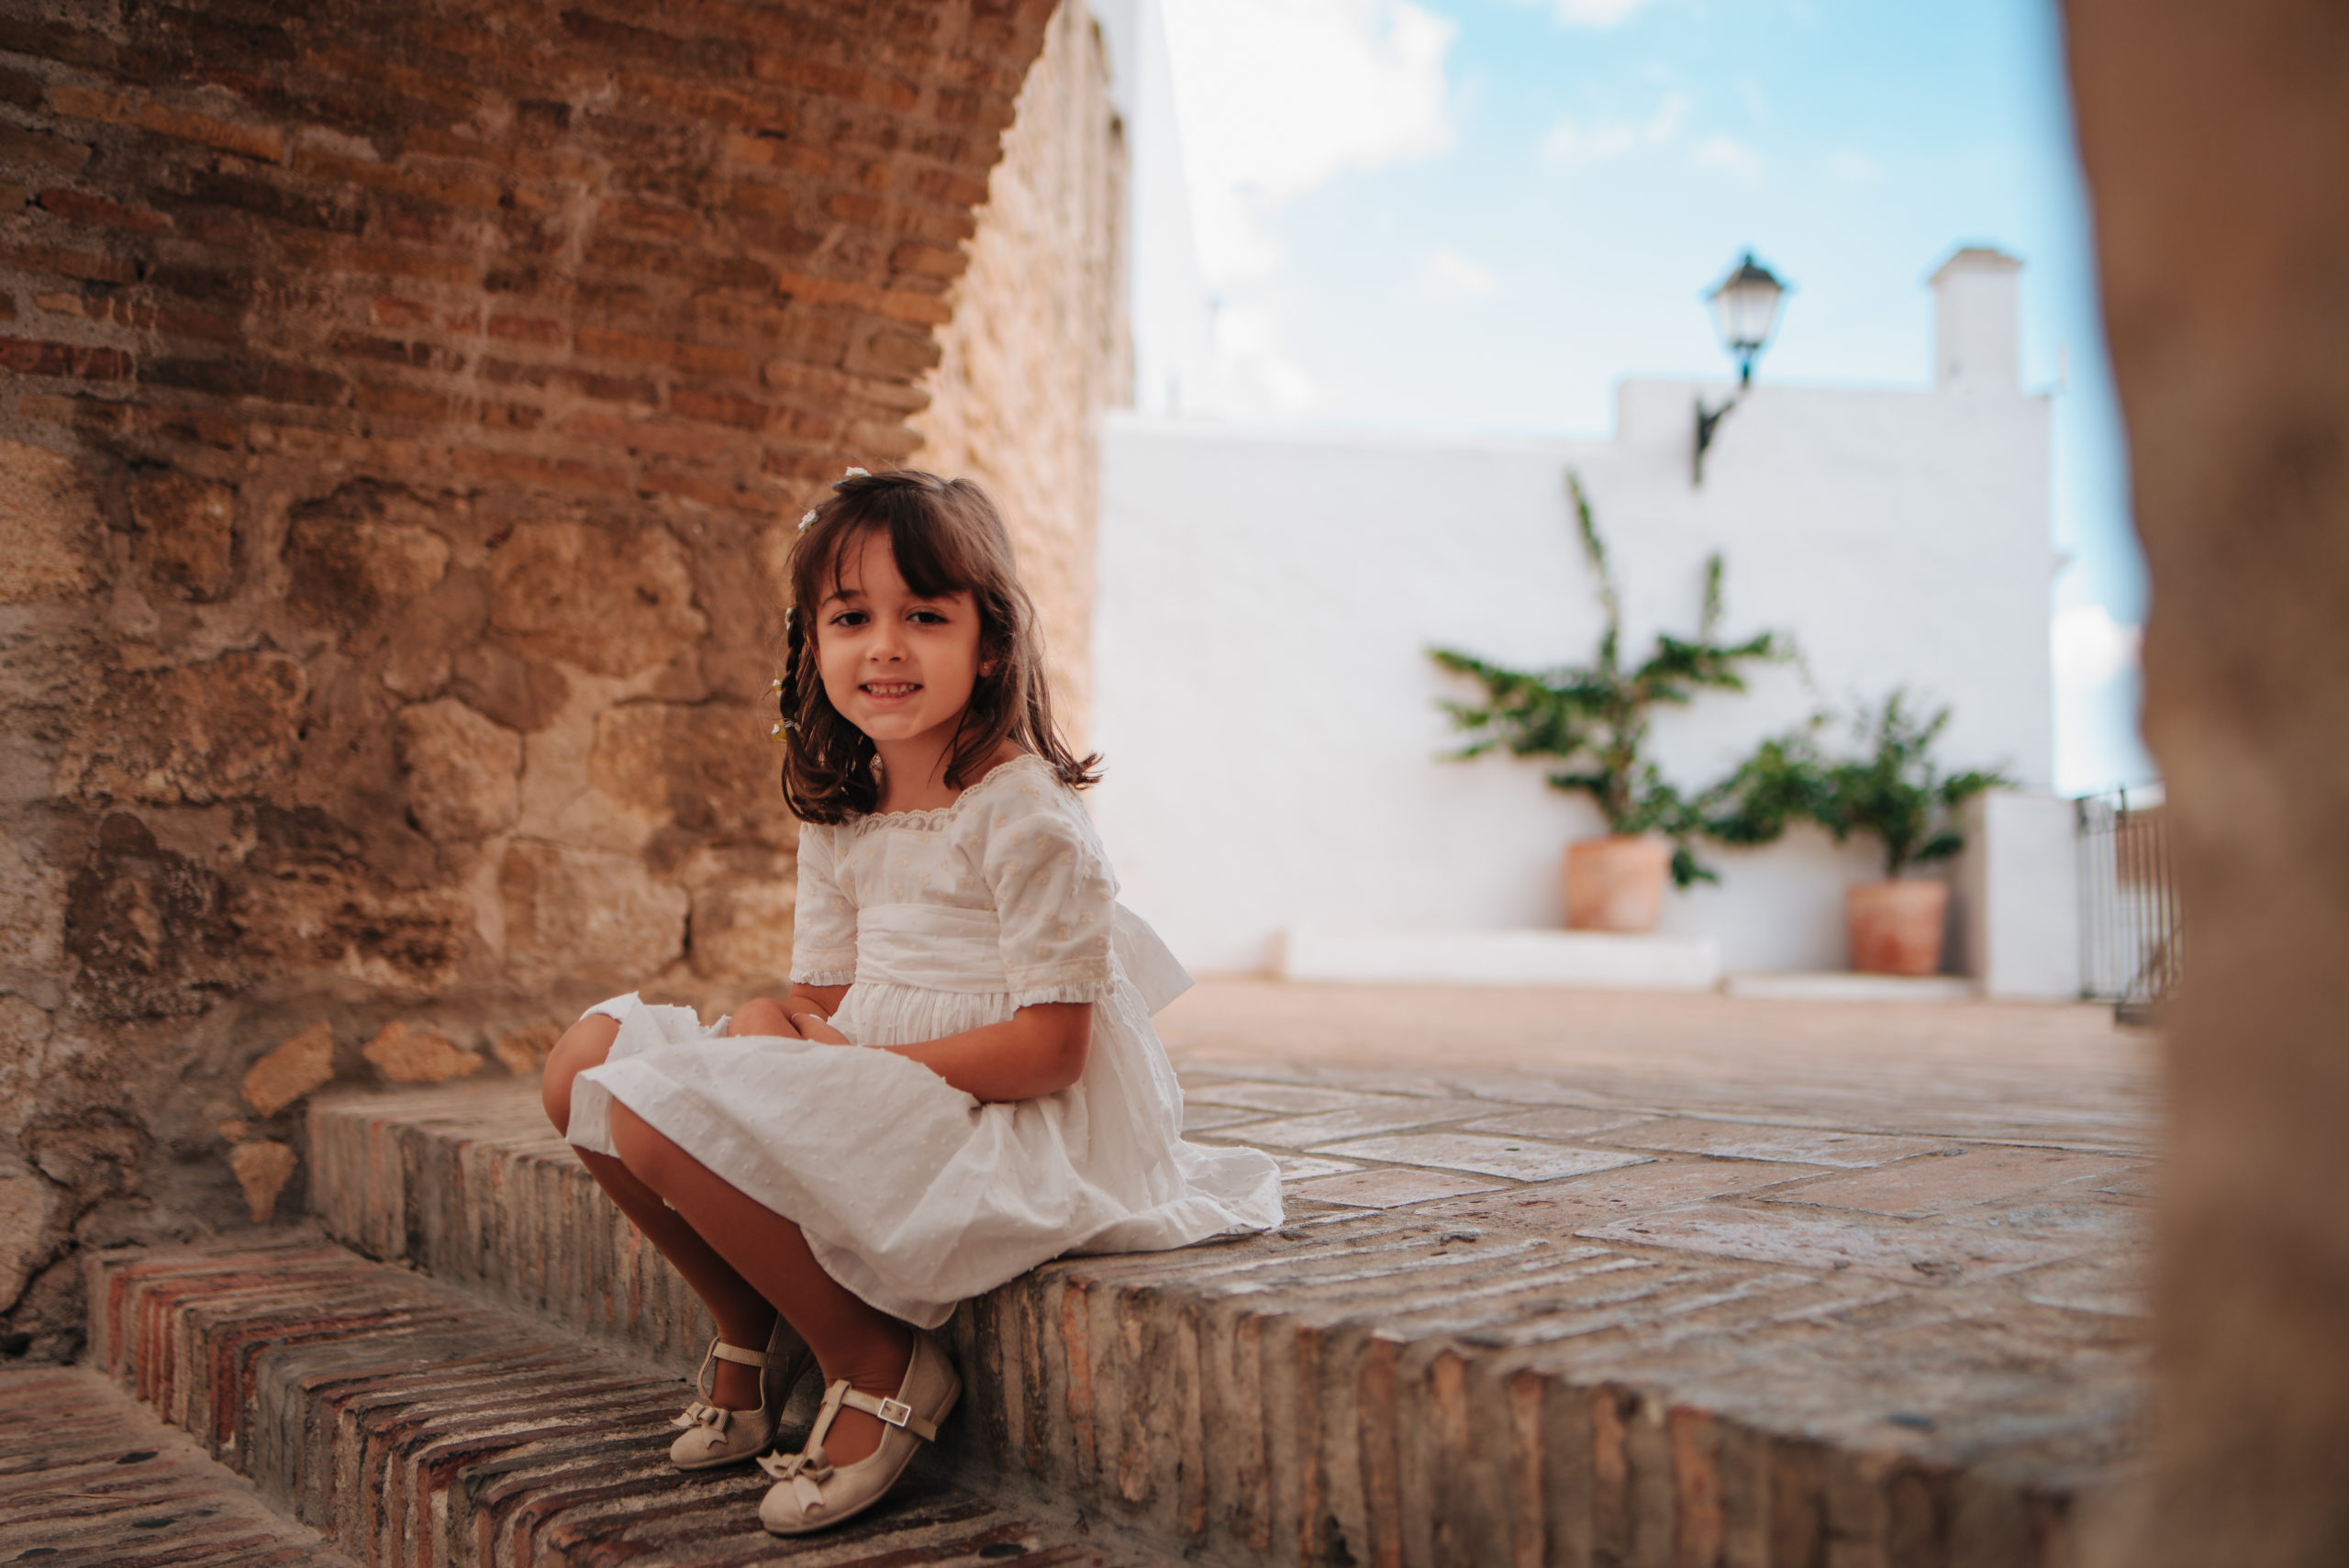 Smiling Caucasian girl with brown hair sitting on a stone staircase